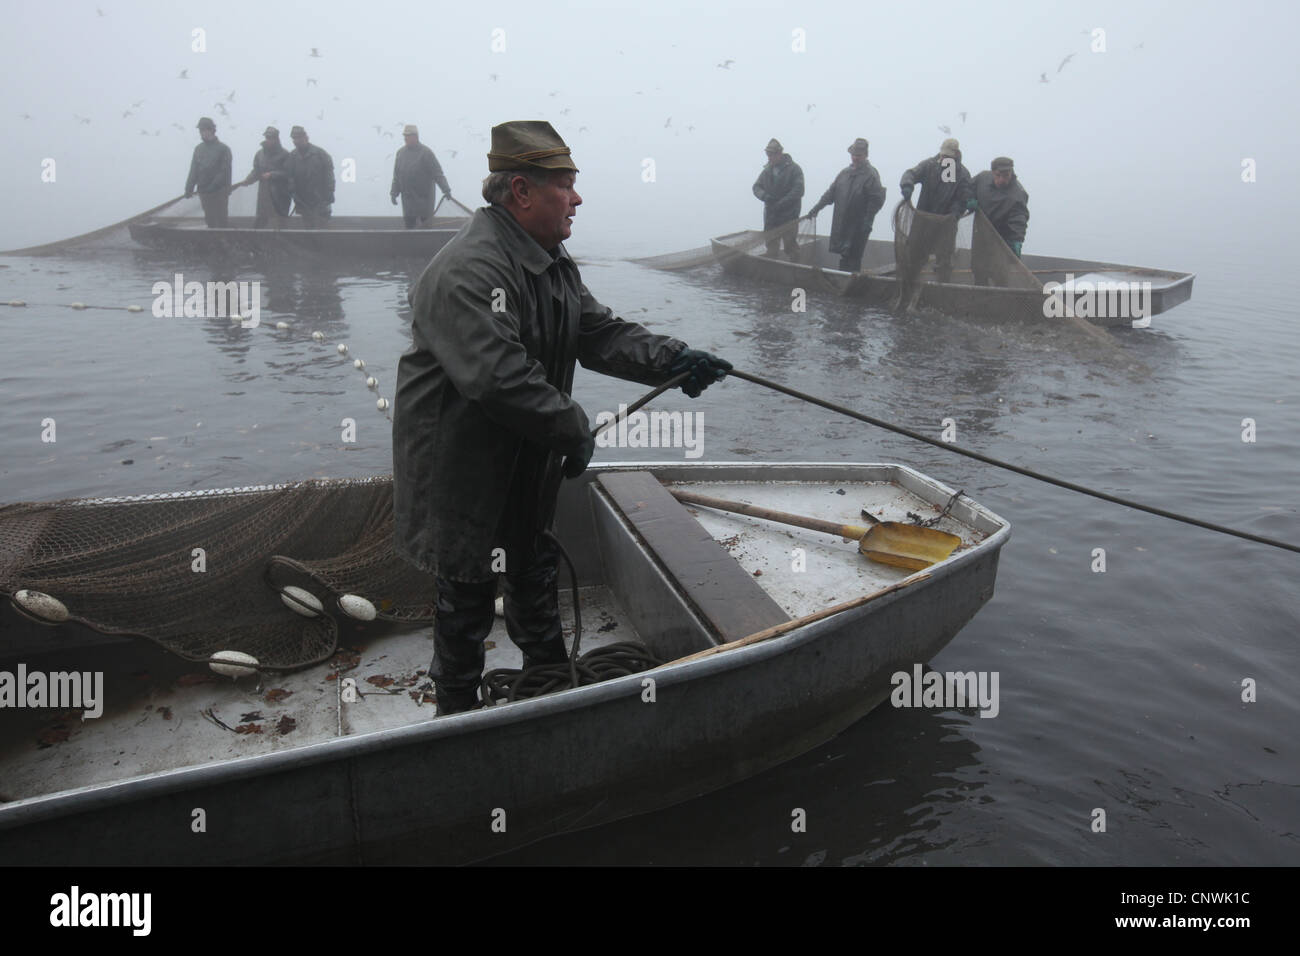 Traditional mass carp fishing at the Velky Tisy Pond in South Bohemia, Czech Republic. Stock Photo